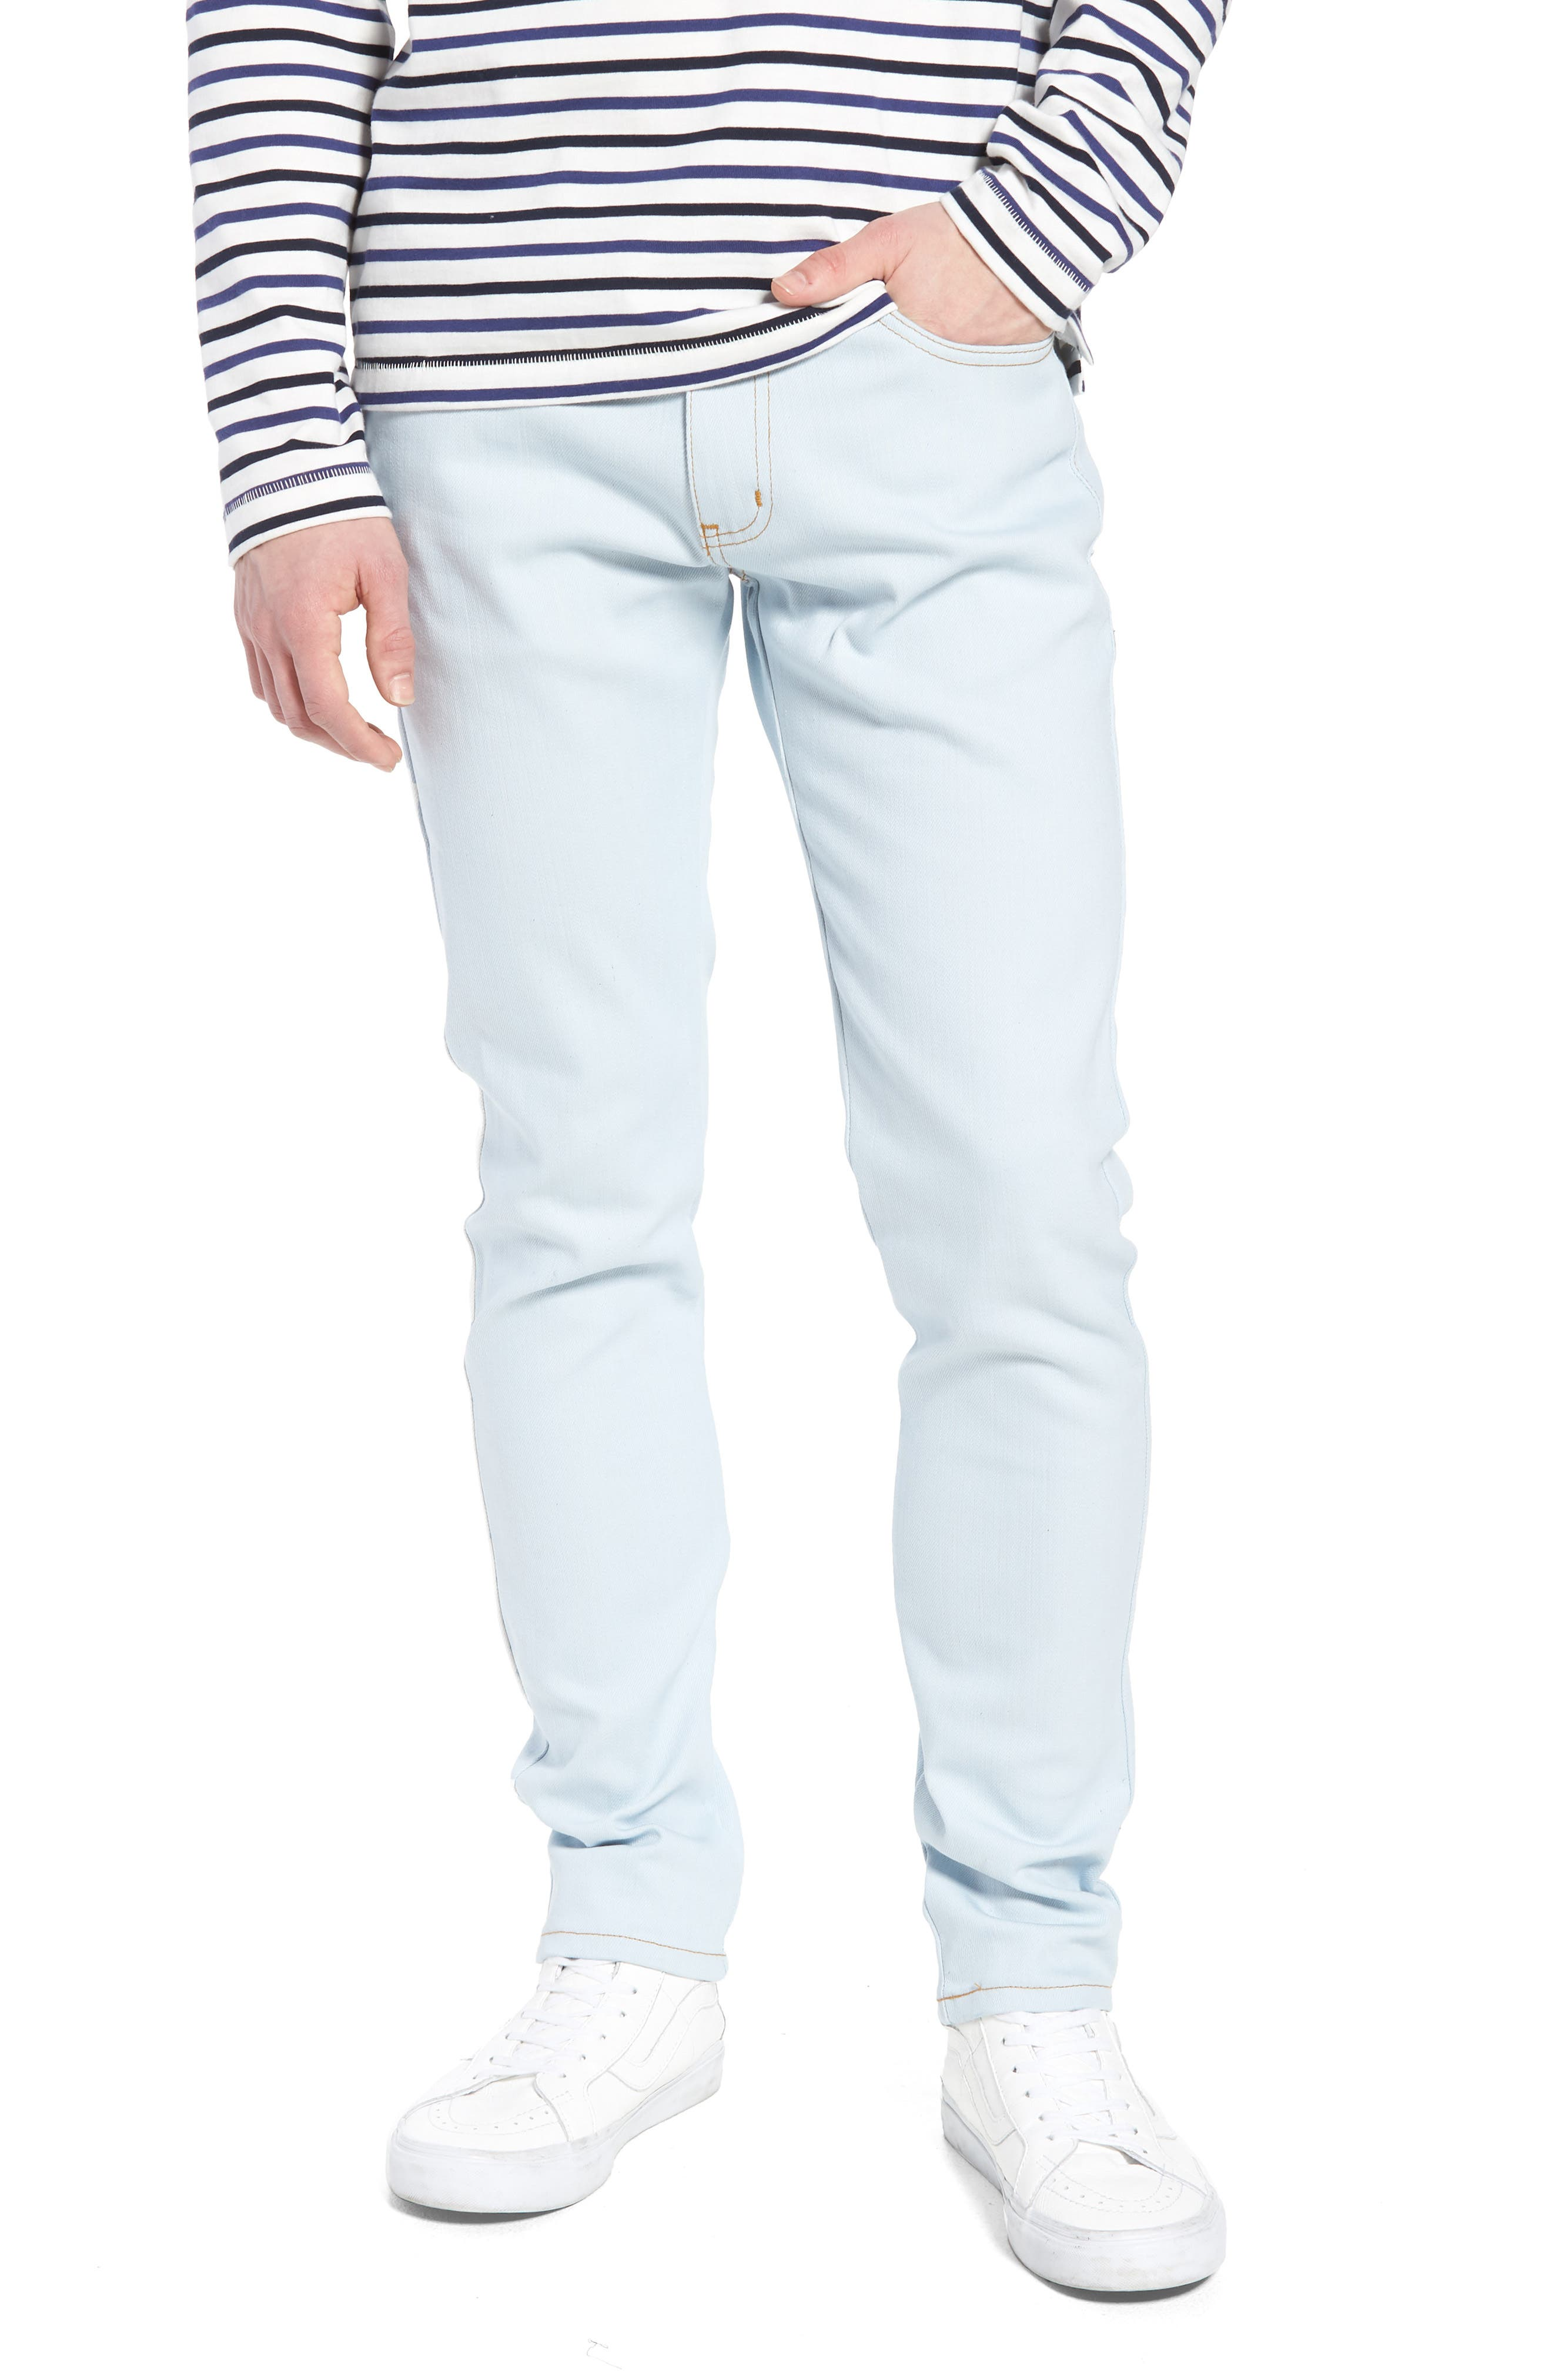 Naked & Famous Super Skinny Guy Skinny Fit Jeans,                             Main thumbnail 1, color,                             Powder Blue